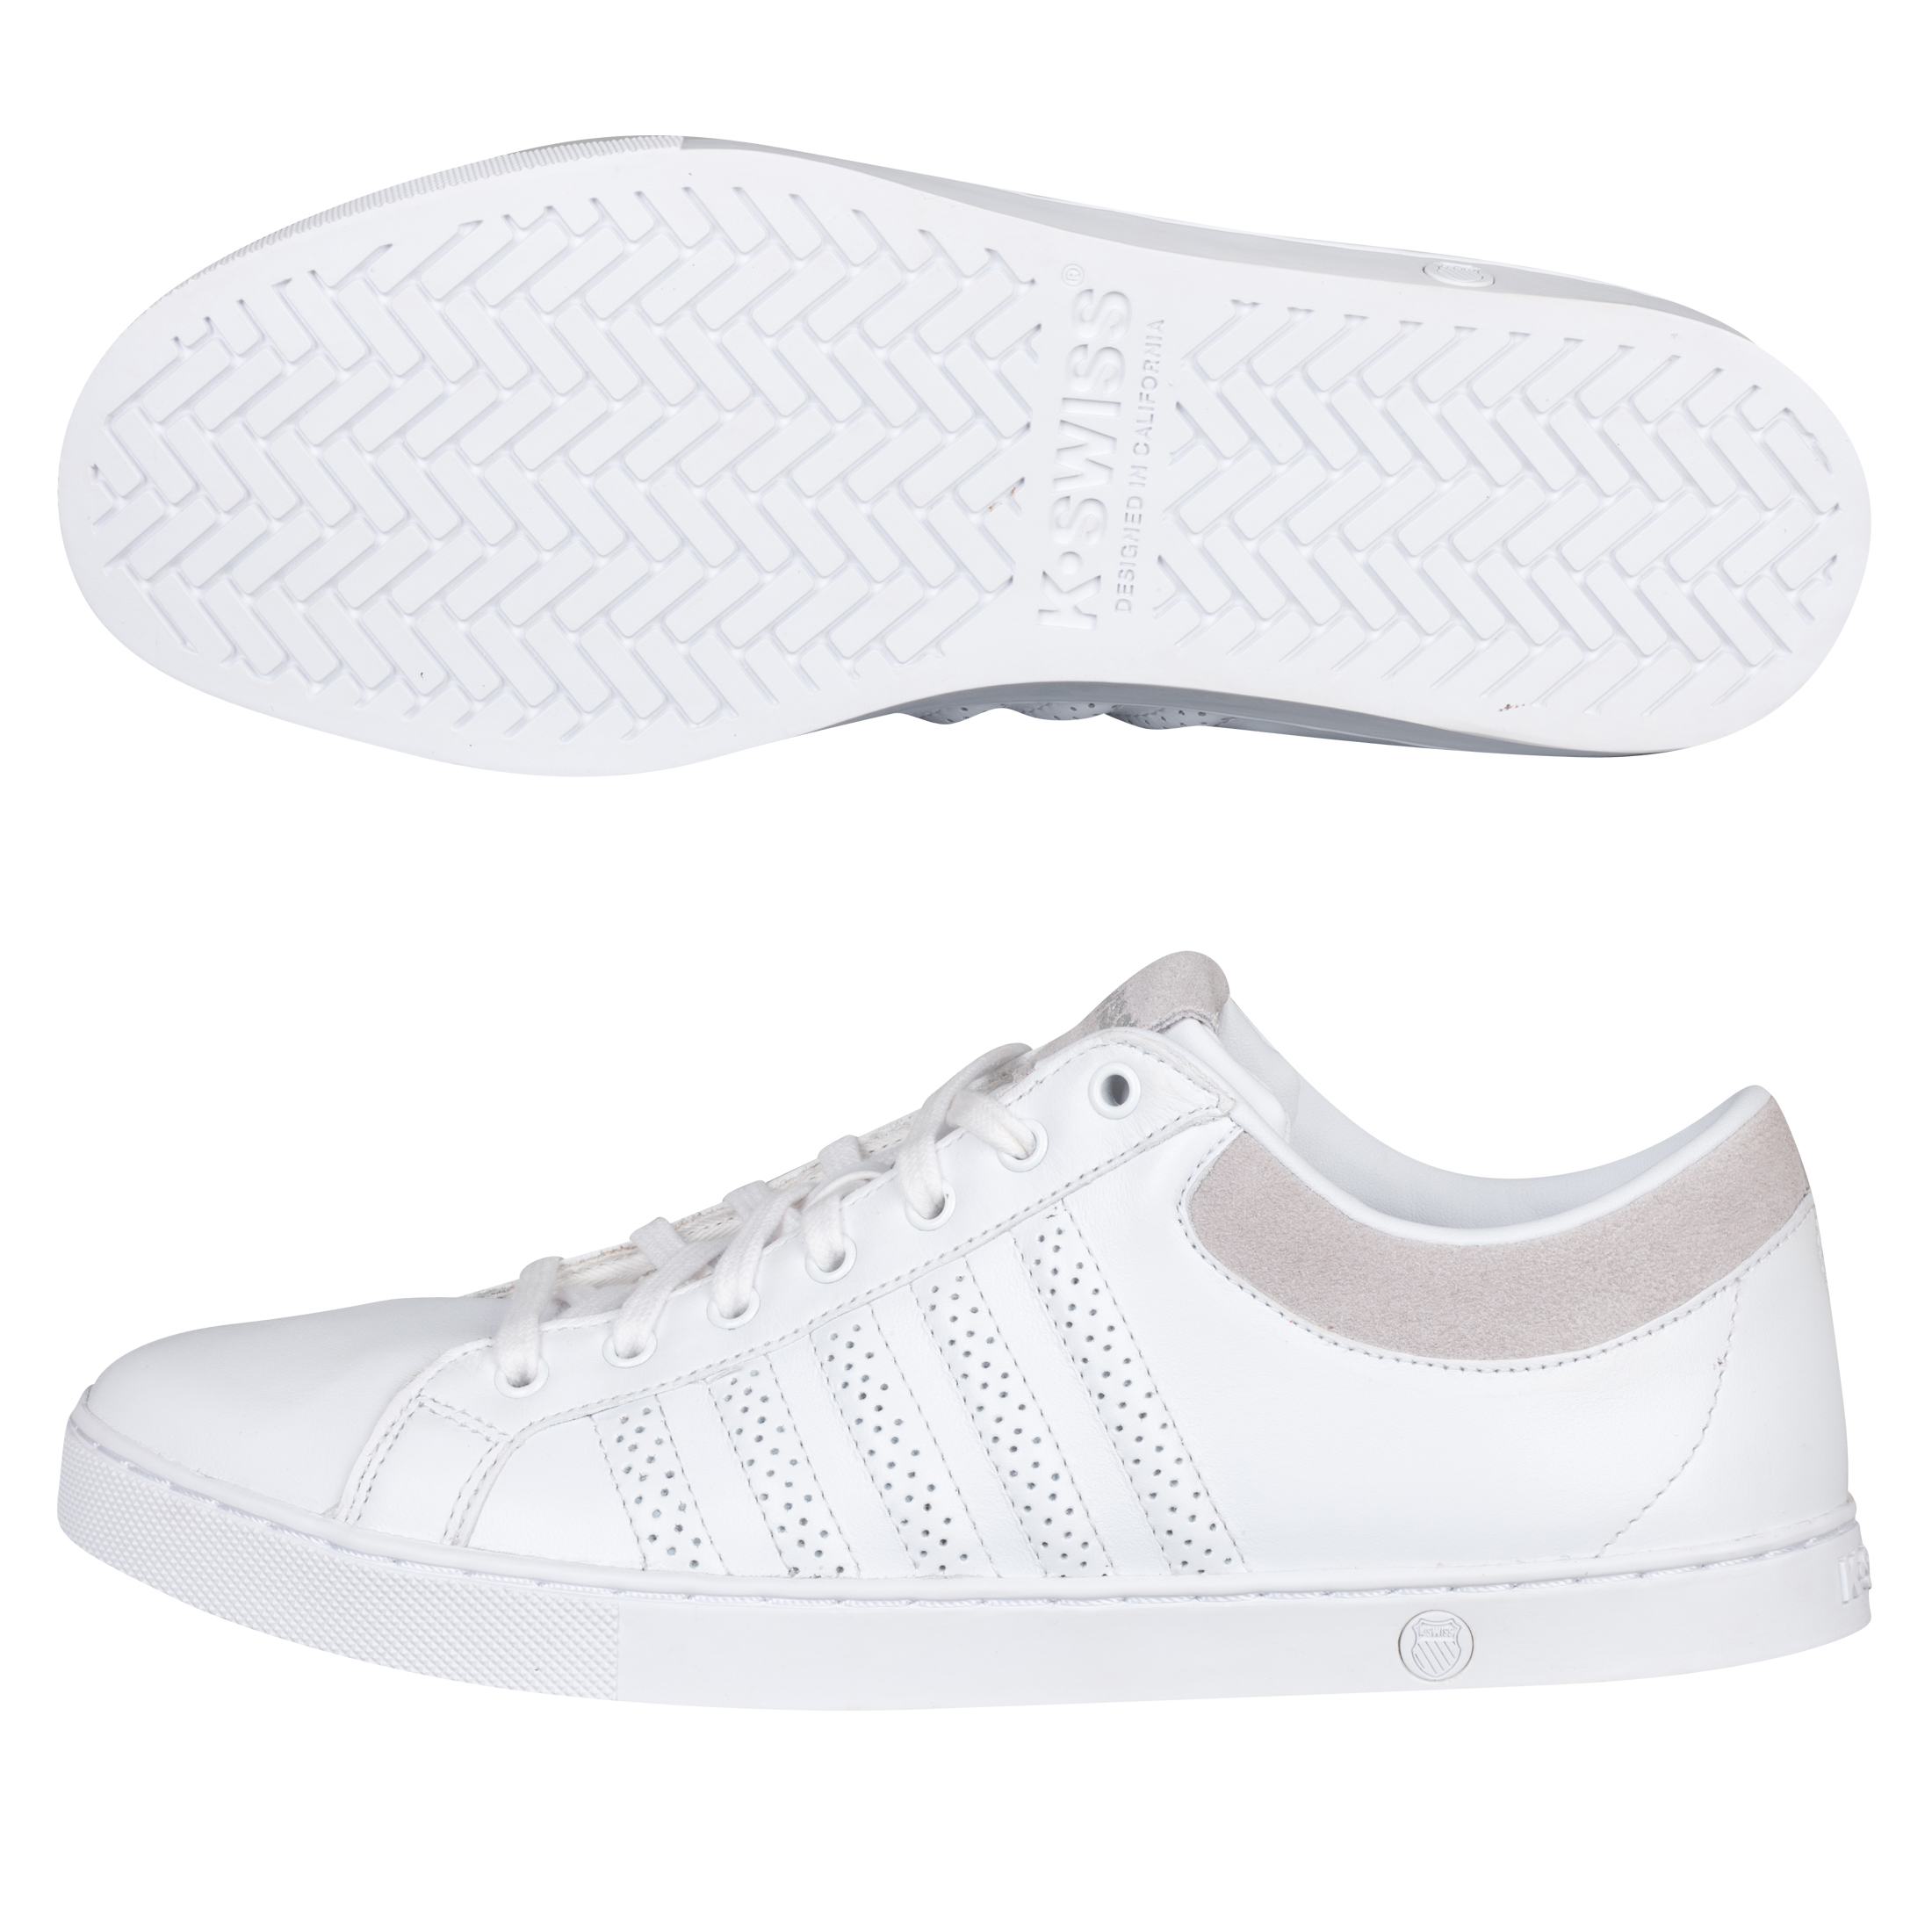 K Swiss K-Swiss Adcourt 72 Trainers - White/Gull Gray